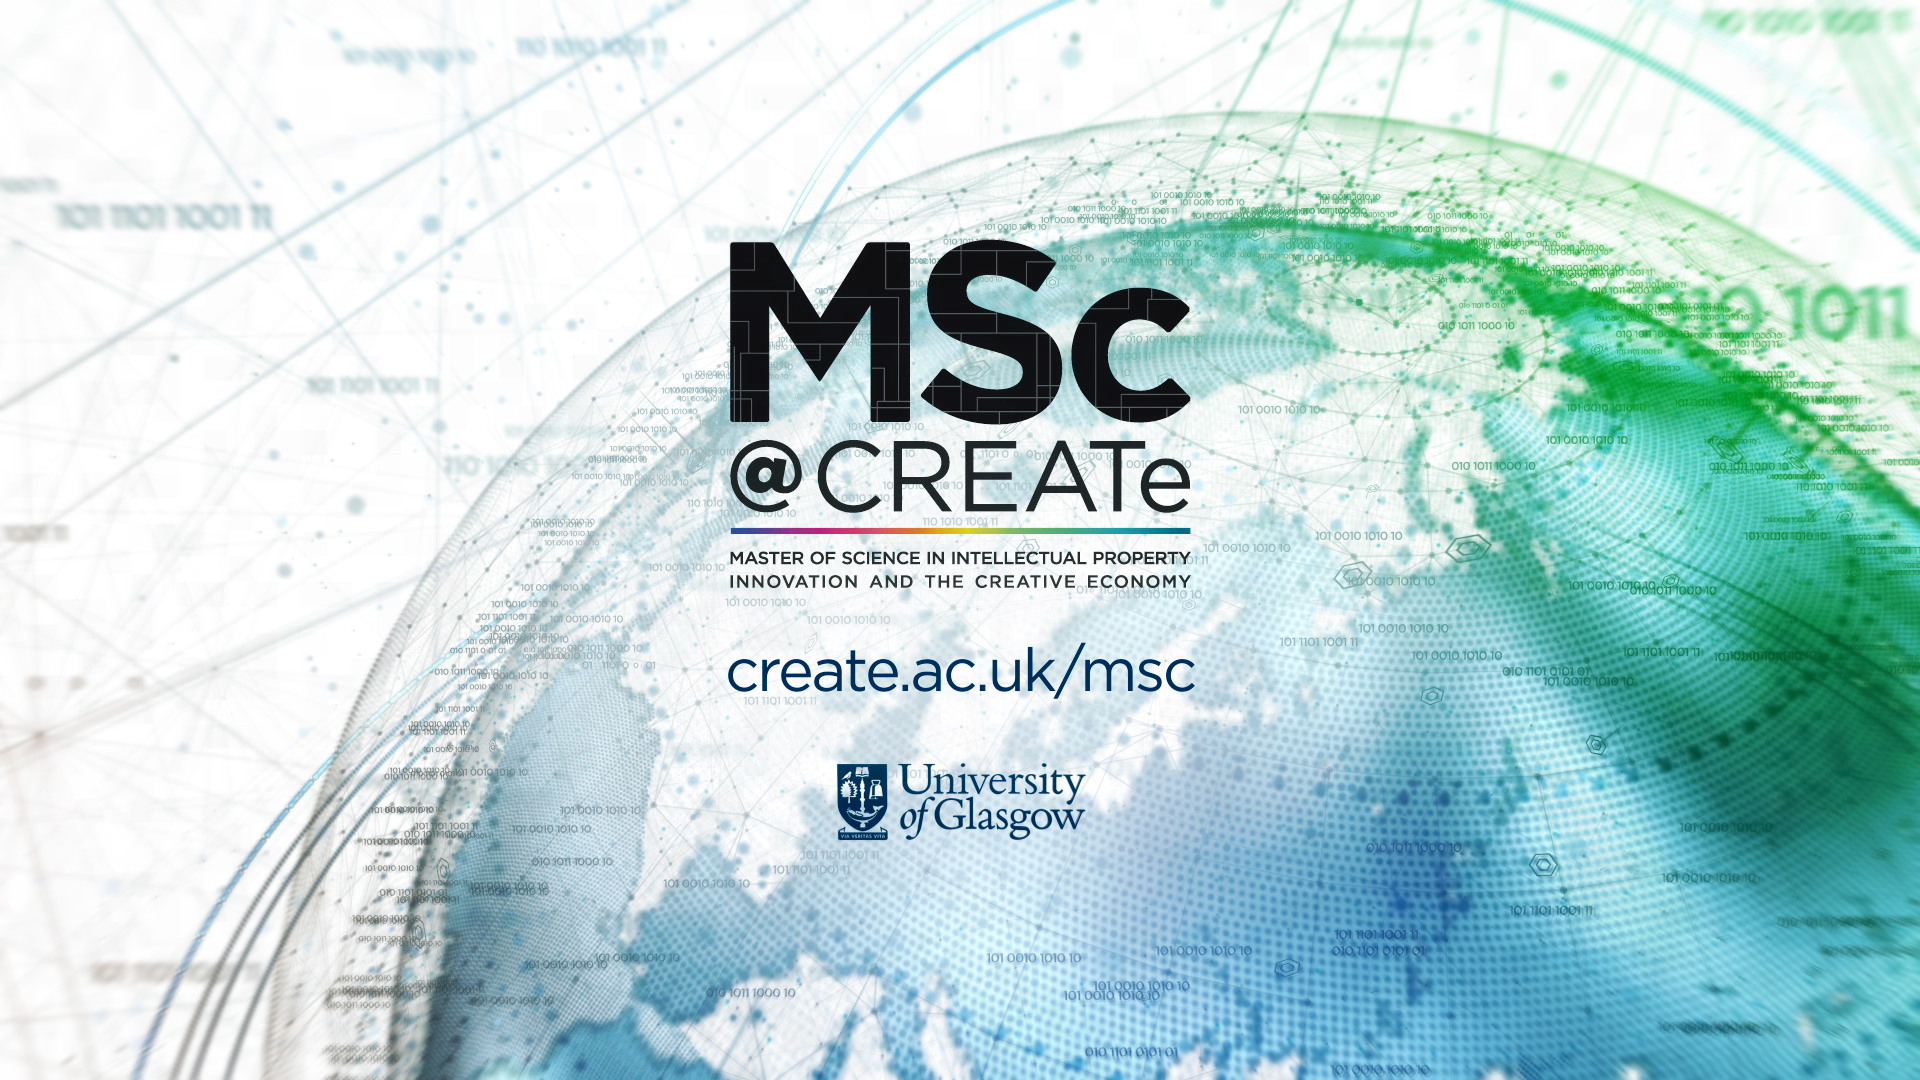 MSc@CREATe Video Promo